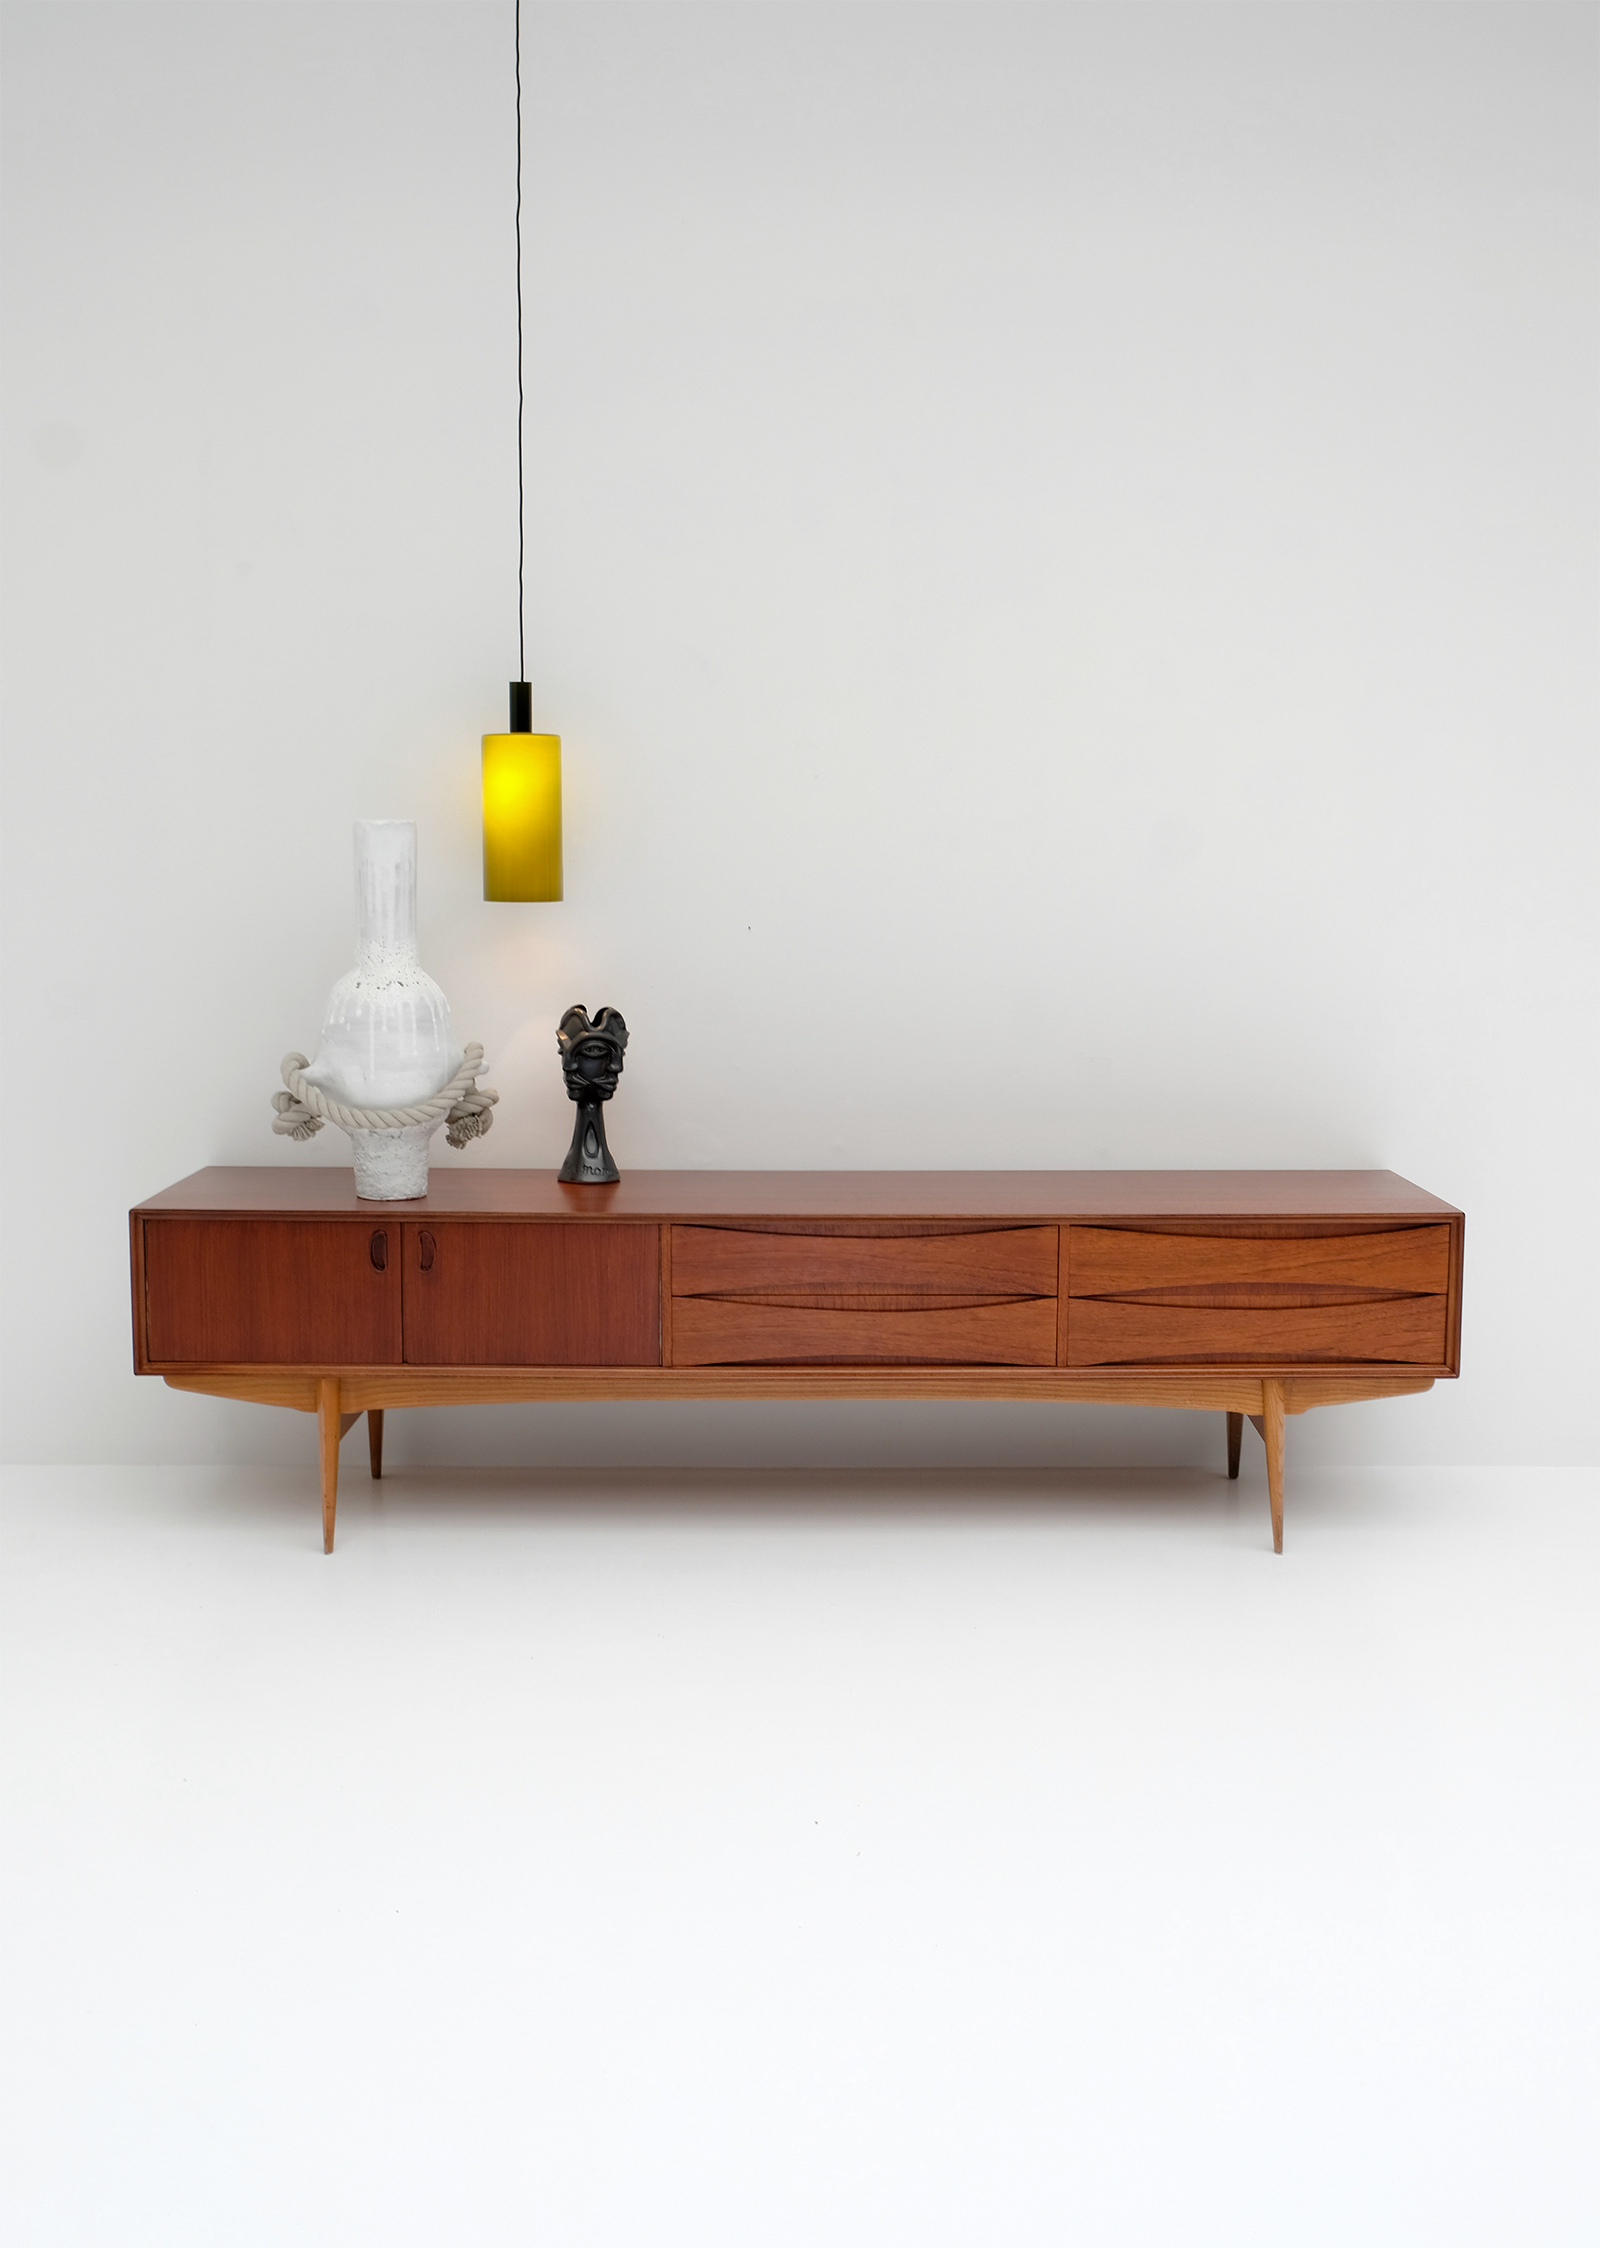 1958 V-form Paola Low Sideboard Oswald Vermaerckeimage 1